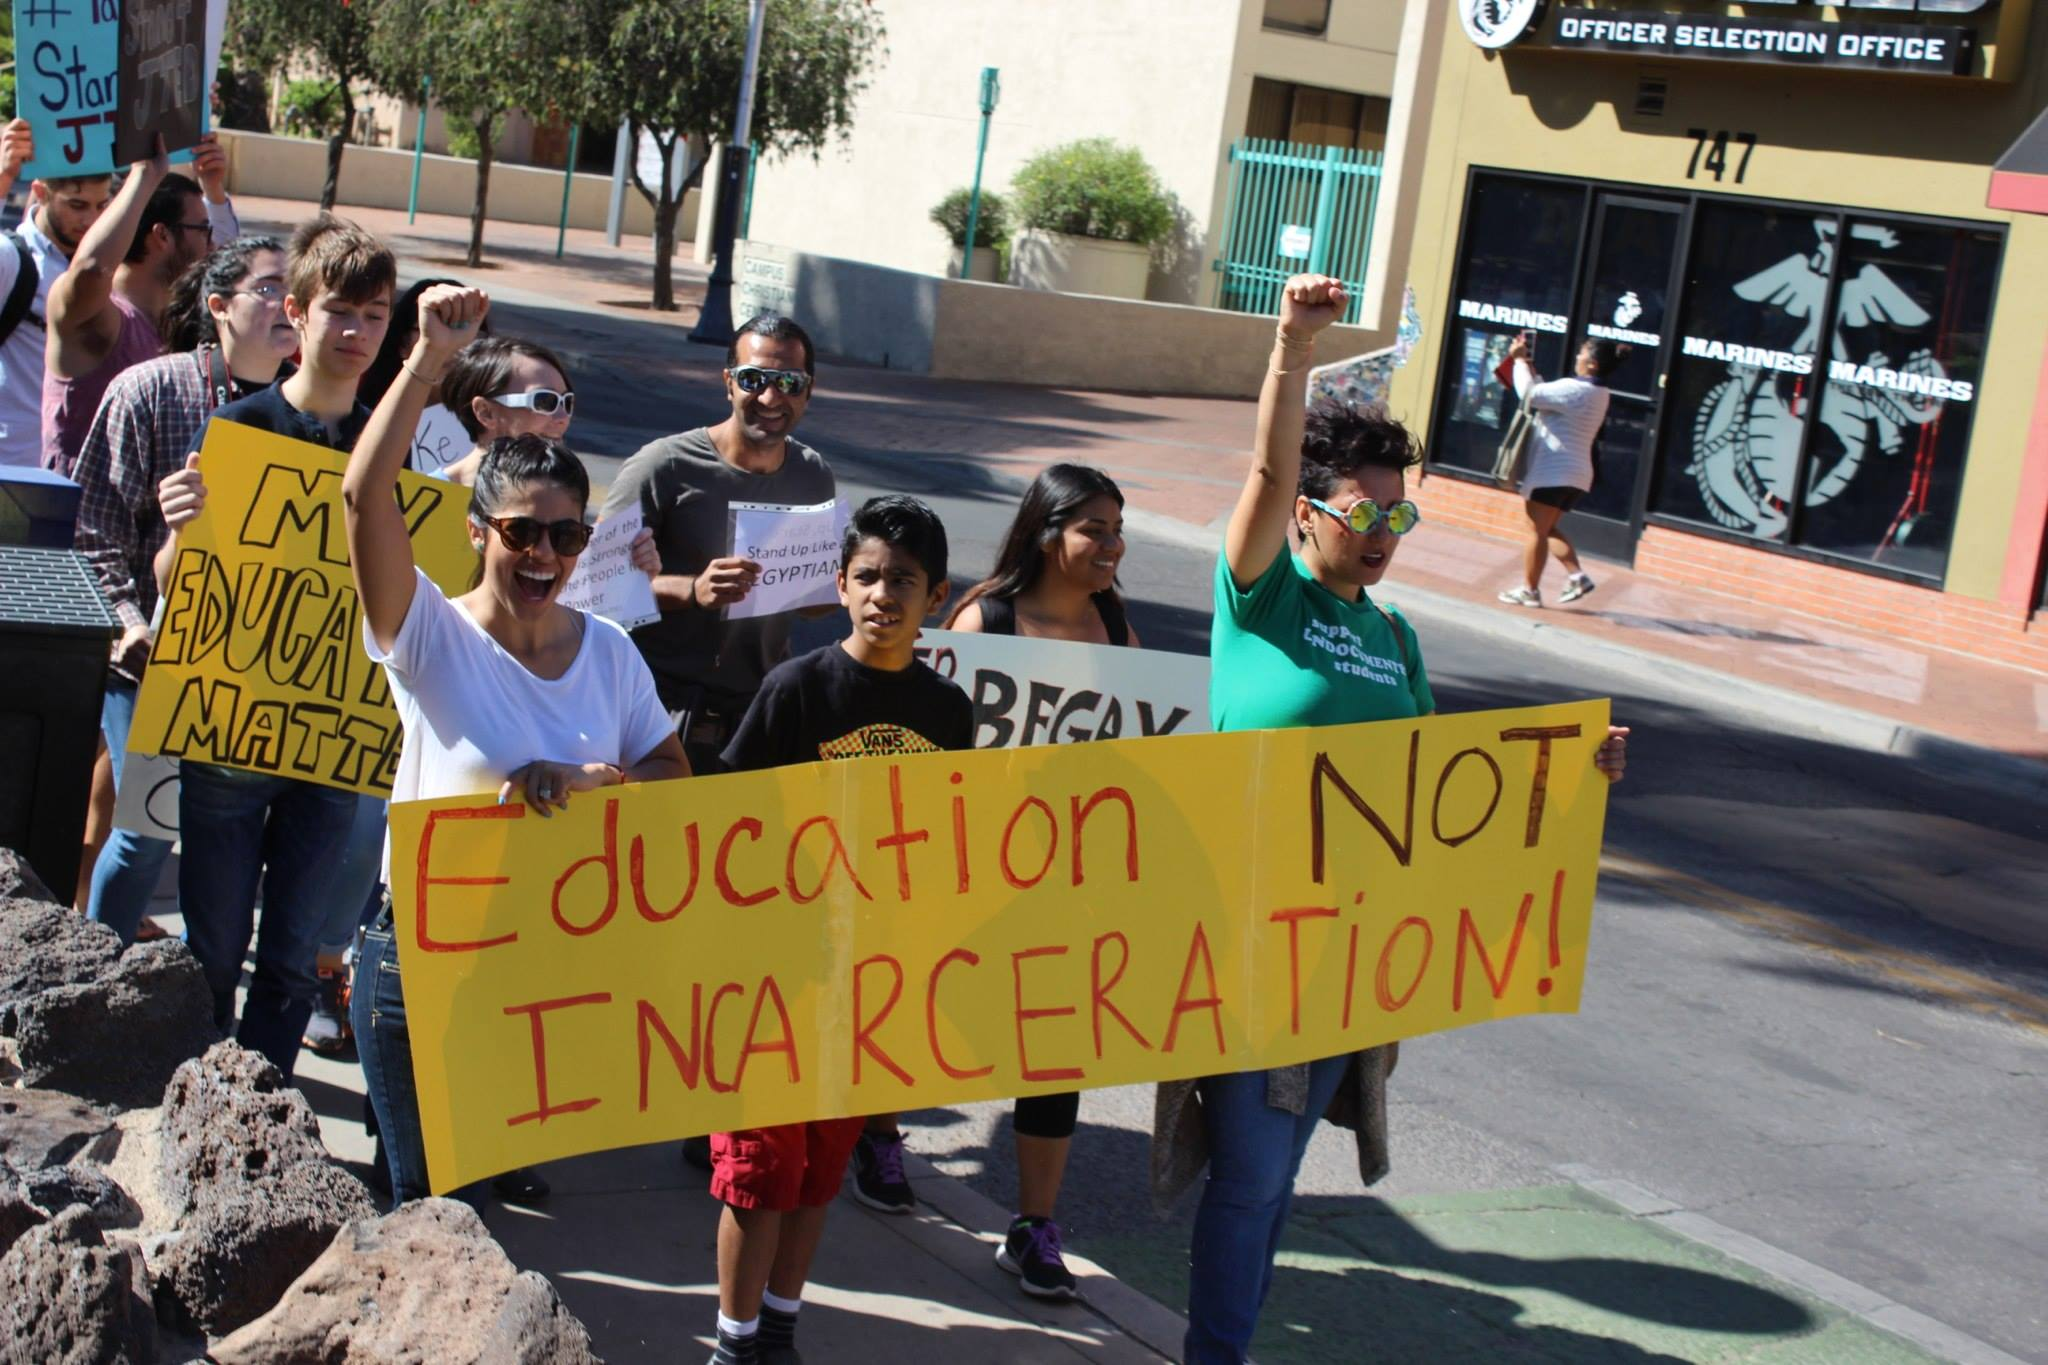 Marching through the University of Arizona's Book Festival to raise awareness around lack of quality education, 2014.